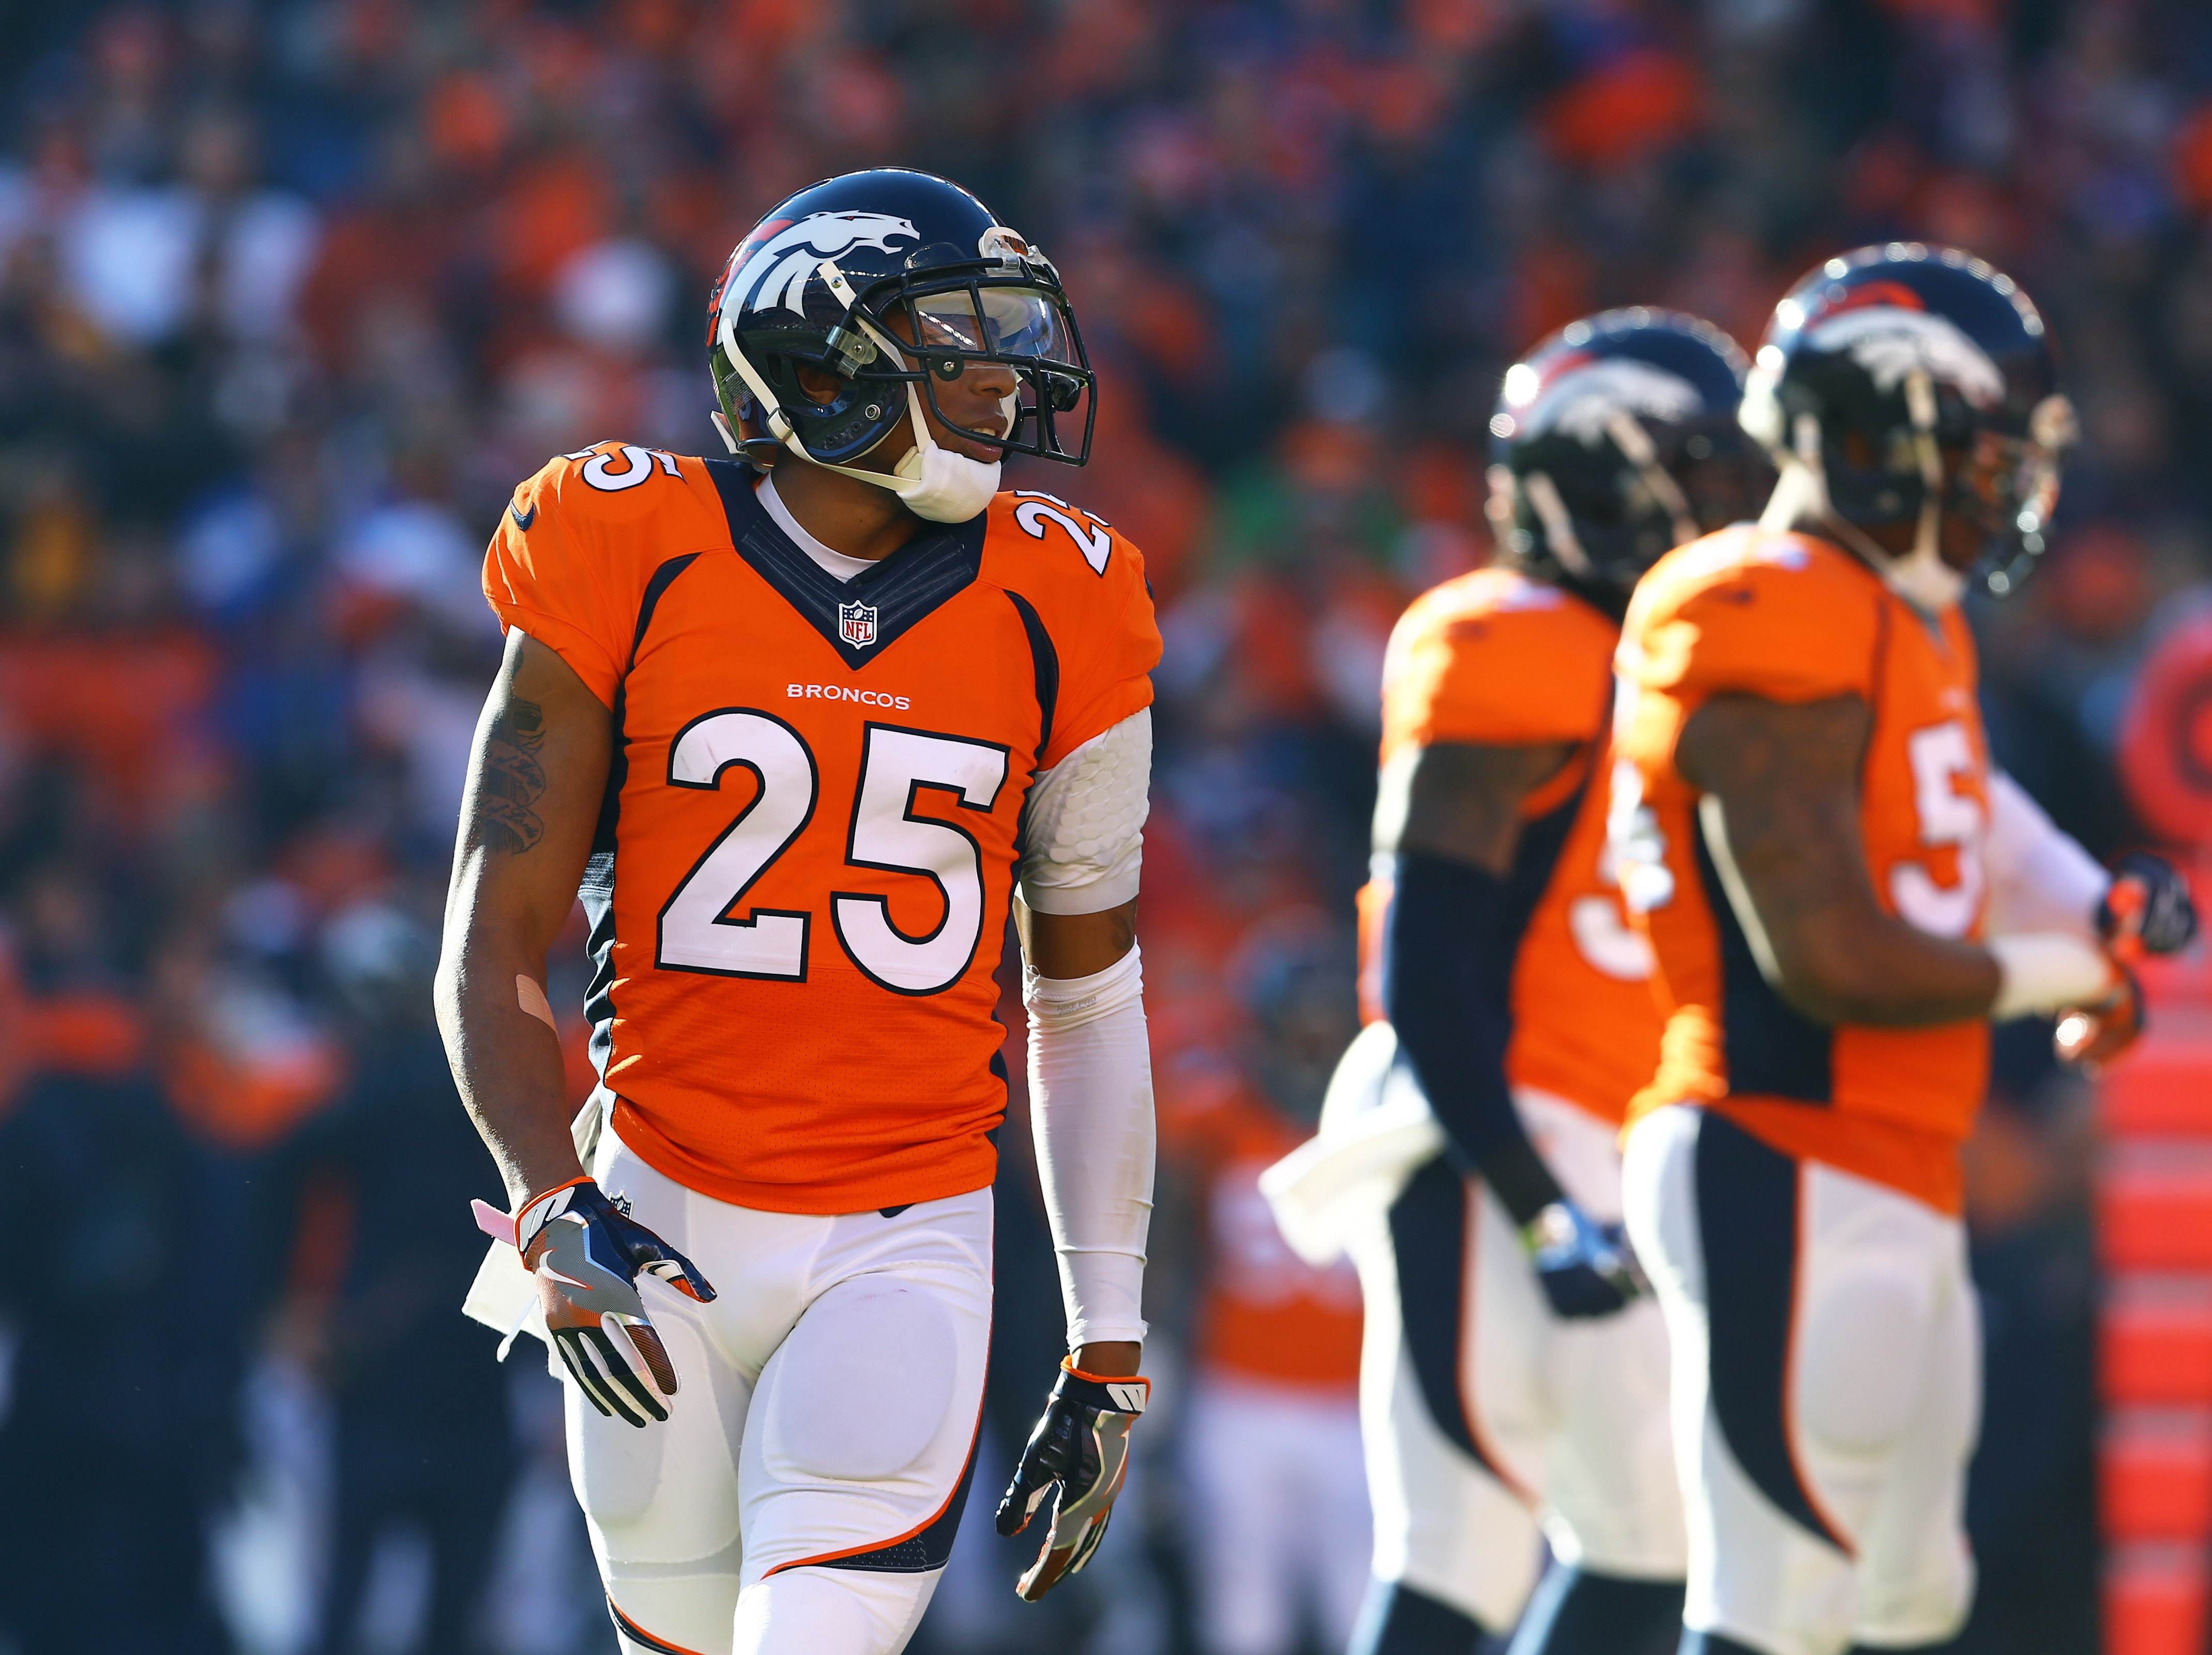 Broncos Cb Chris Harris Jr Ranked 63 On Nfl Top 100 Reaction